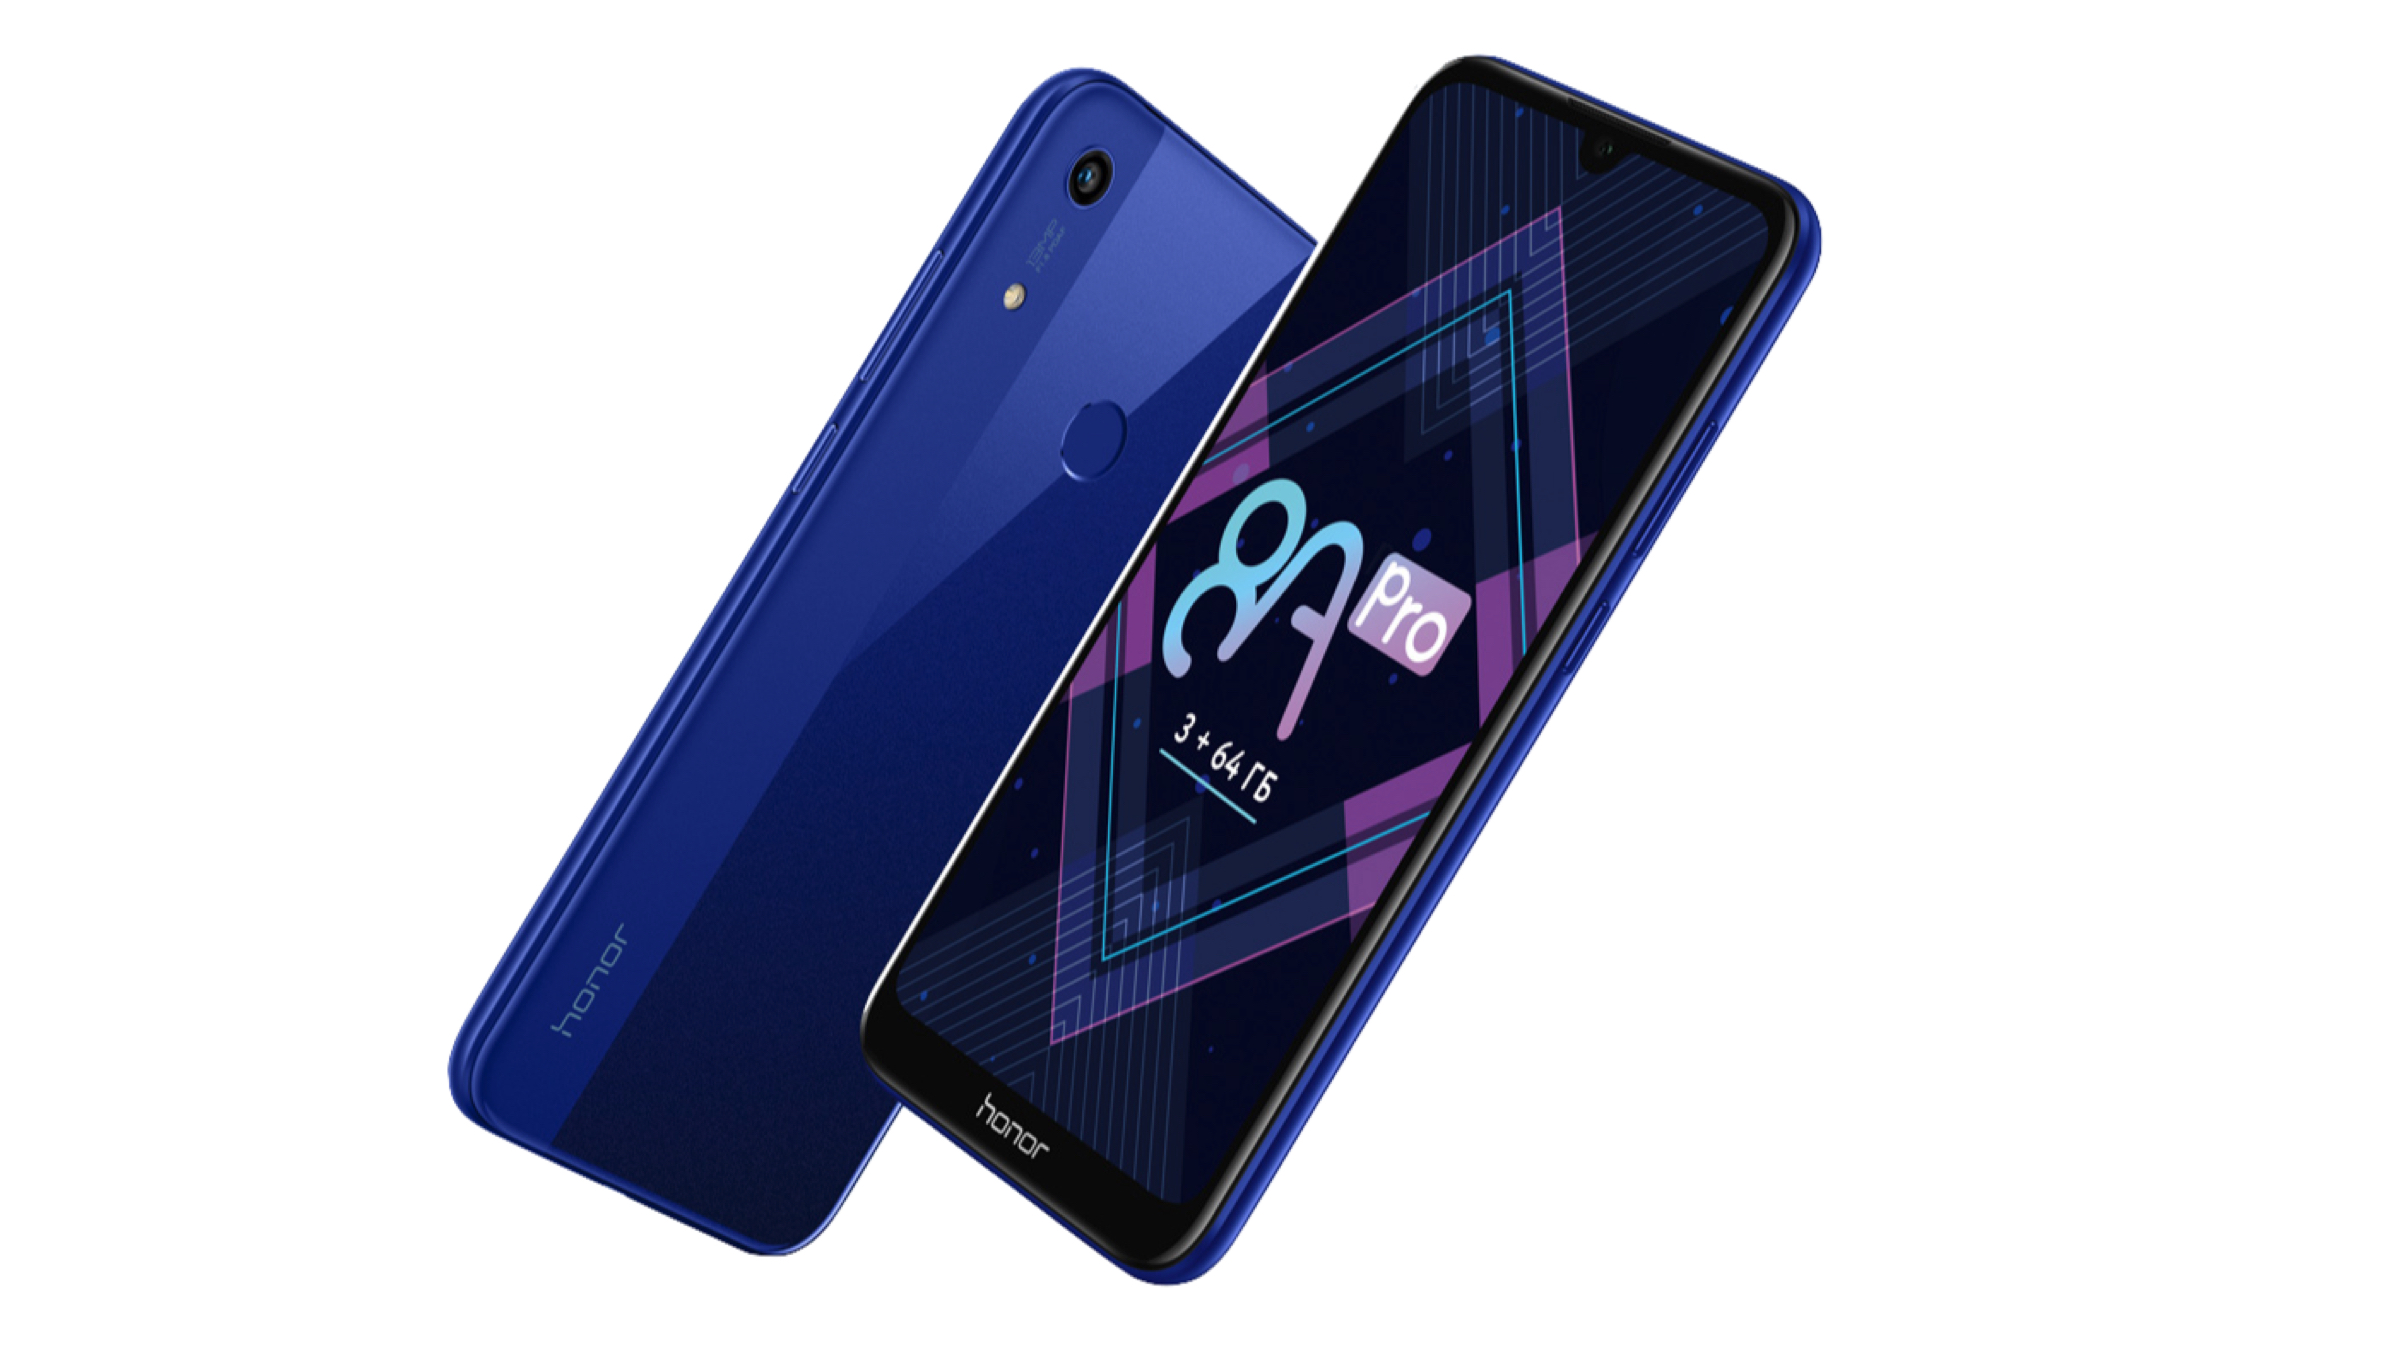 Honor 8A Pro Full Details, Honor 8A Pro Camera Test, Honor 8A Pro Display Size, Honor 8A Pro Price, Honor 8A Pro Testing, Honor 8A Pro Cam, Honor 8A Pro